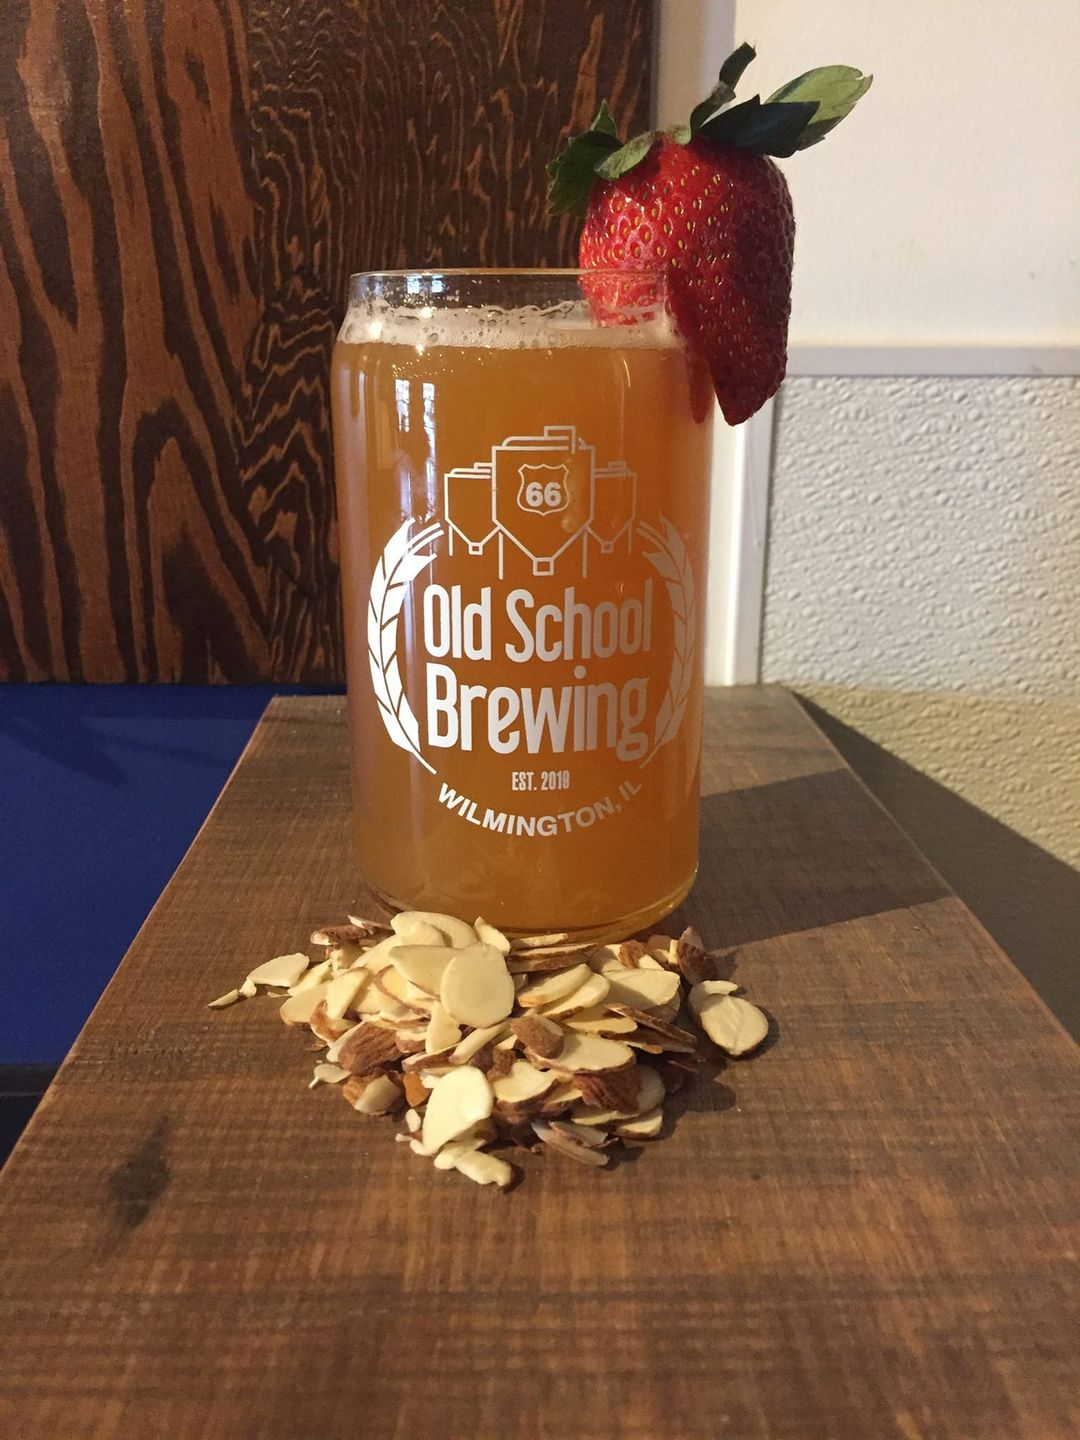 Beer with a strawberry in it, from Rt66 Old School Brewing